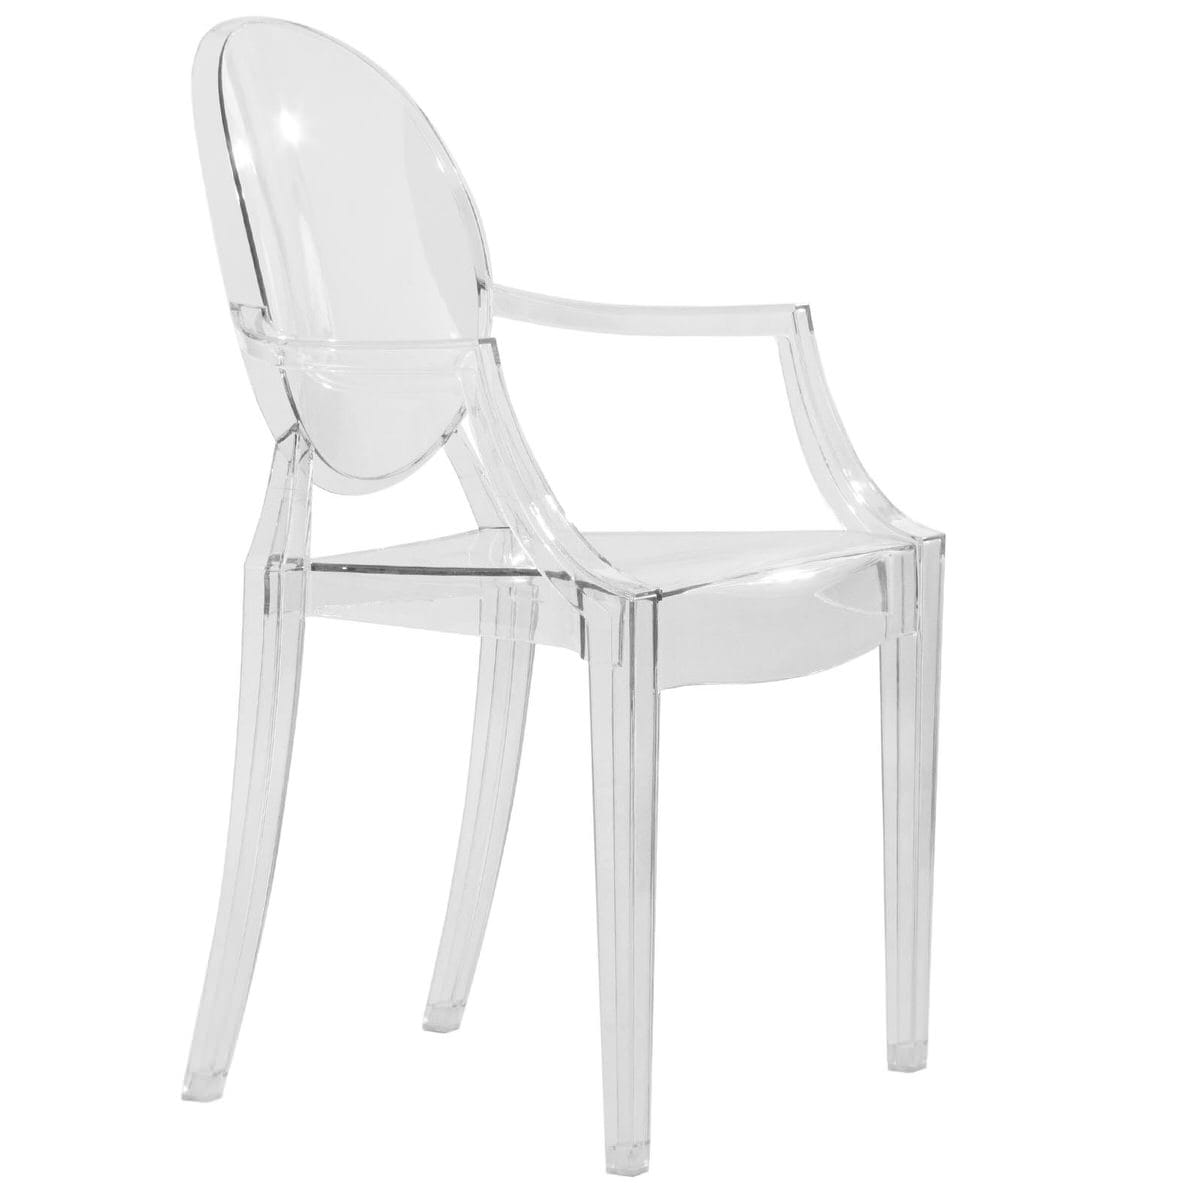 Swell Carroll Modern Clear Acrylic Chair By Leisuremod Spiritservingveterans Wood Chair Design Ideas Spiritservingveteransorg